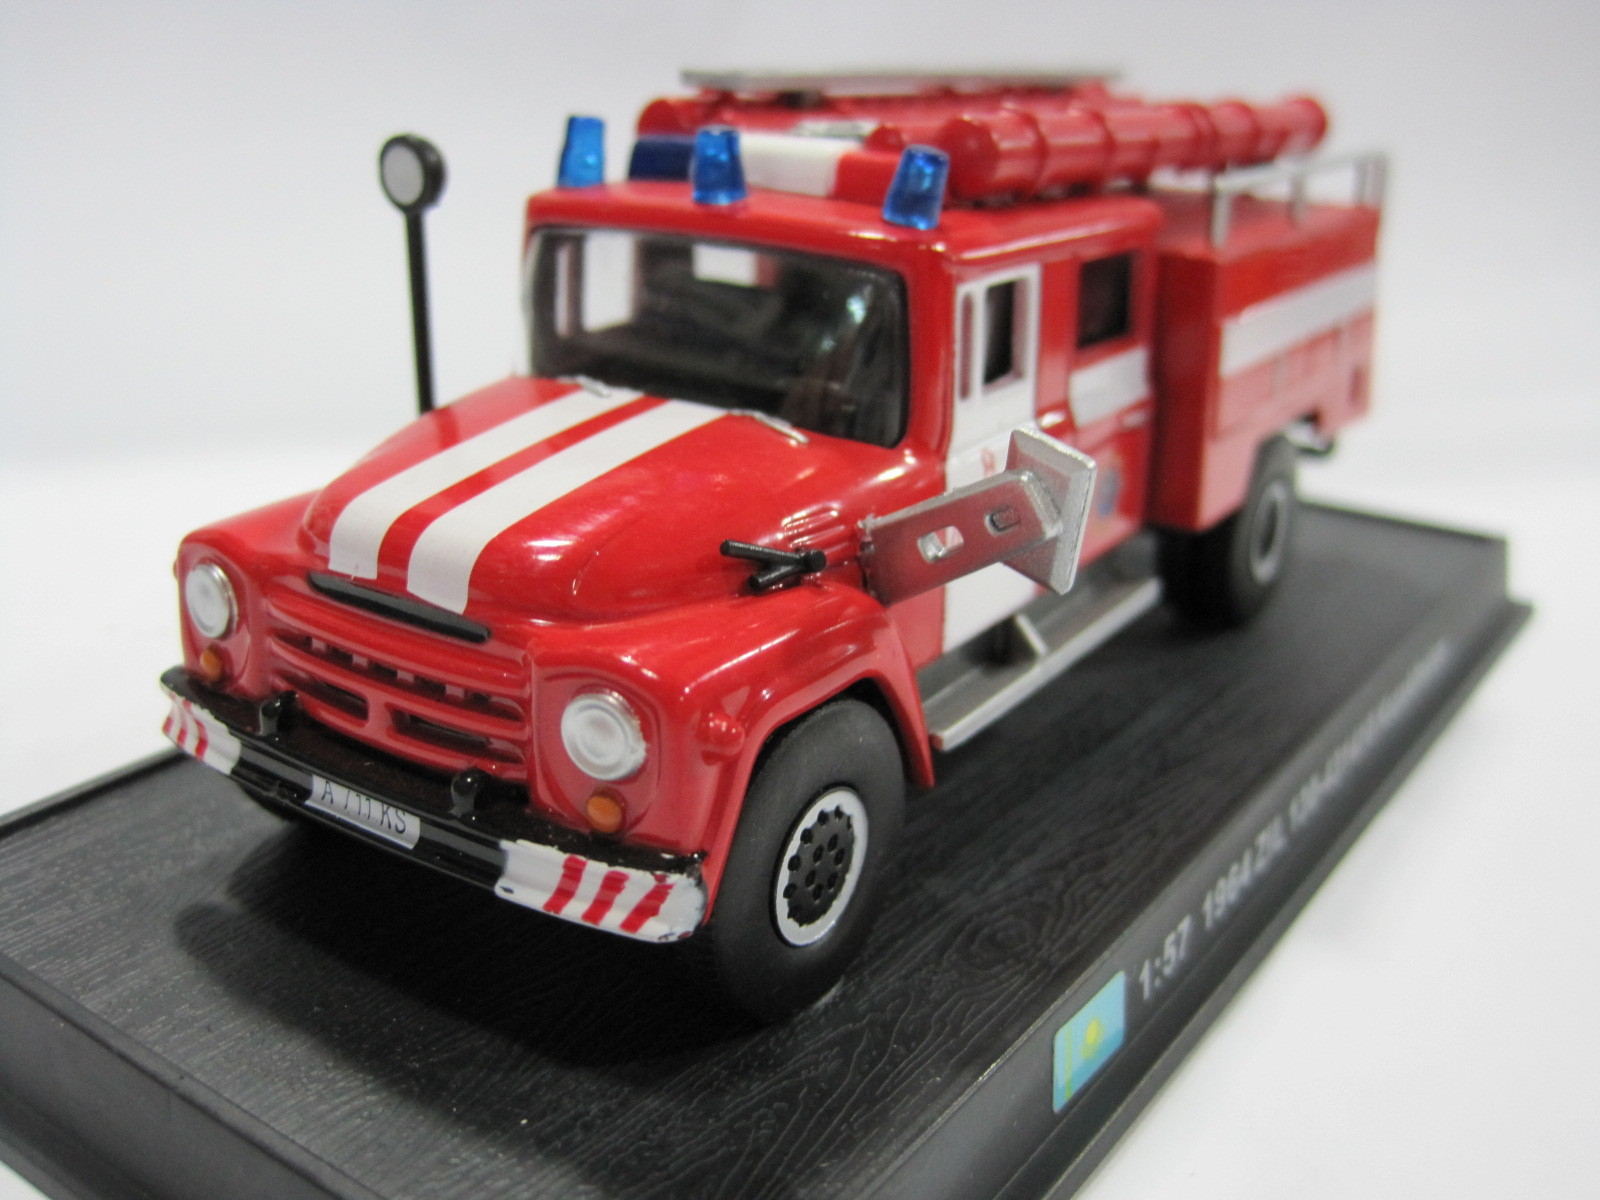 AMER 1/57 Scale Vintage Car 1964 ZiL 130-431410 Kazakhstan Fire Engine Diecast Metal Car Model Toy For Gift/Collection